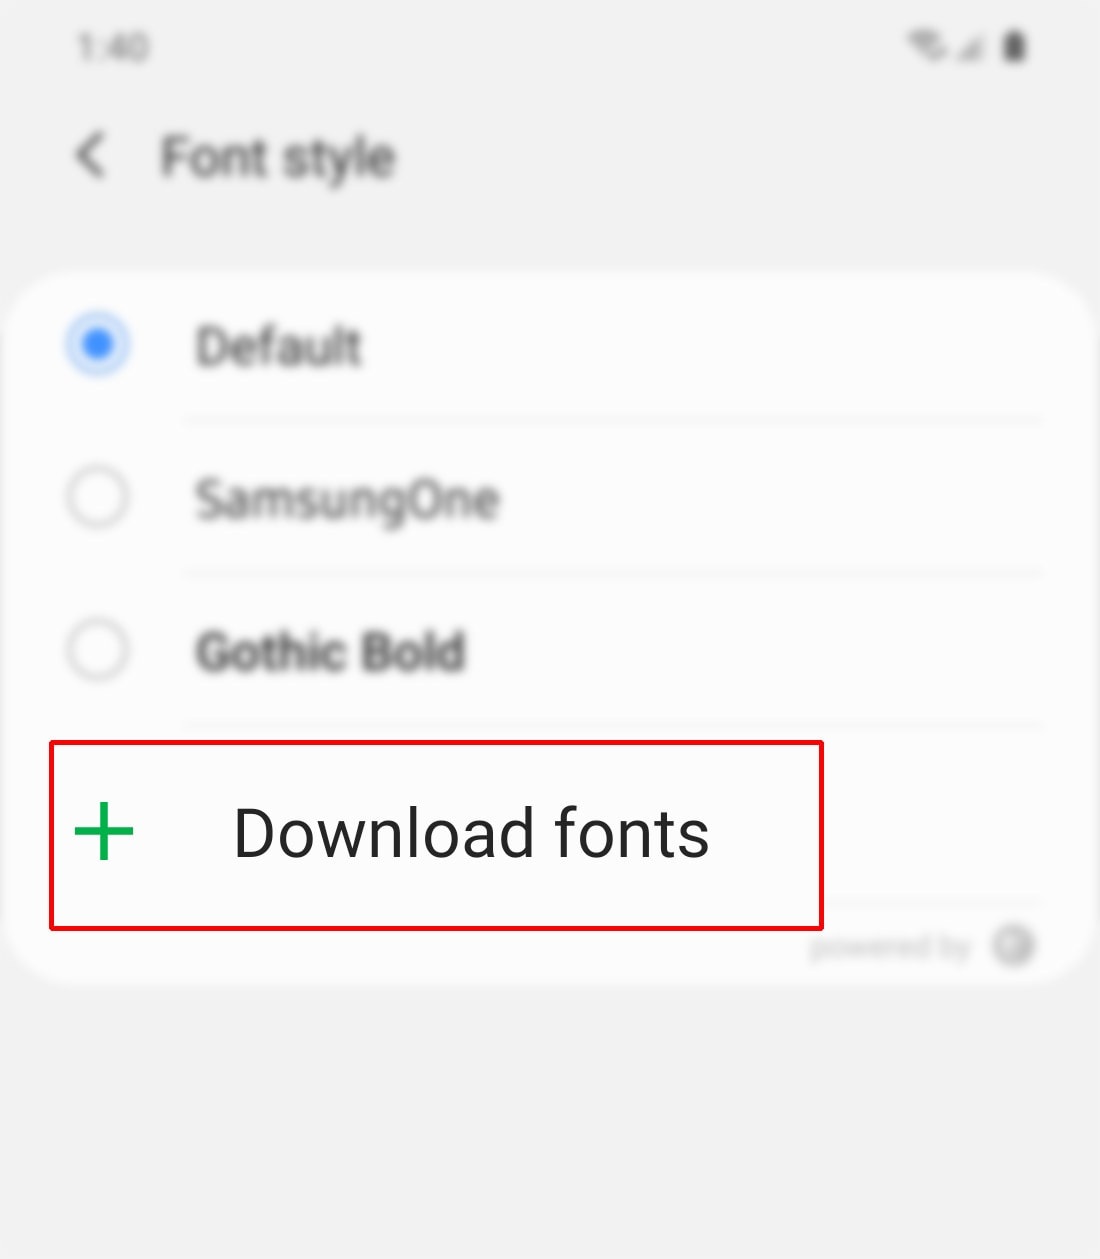 download new fonts on galaxy s20 - download fonts